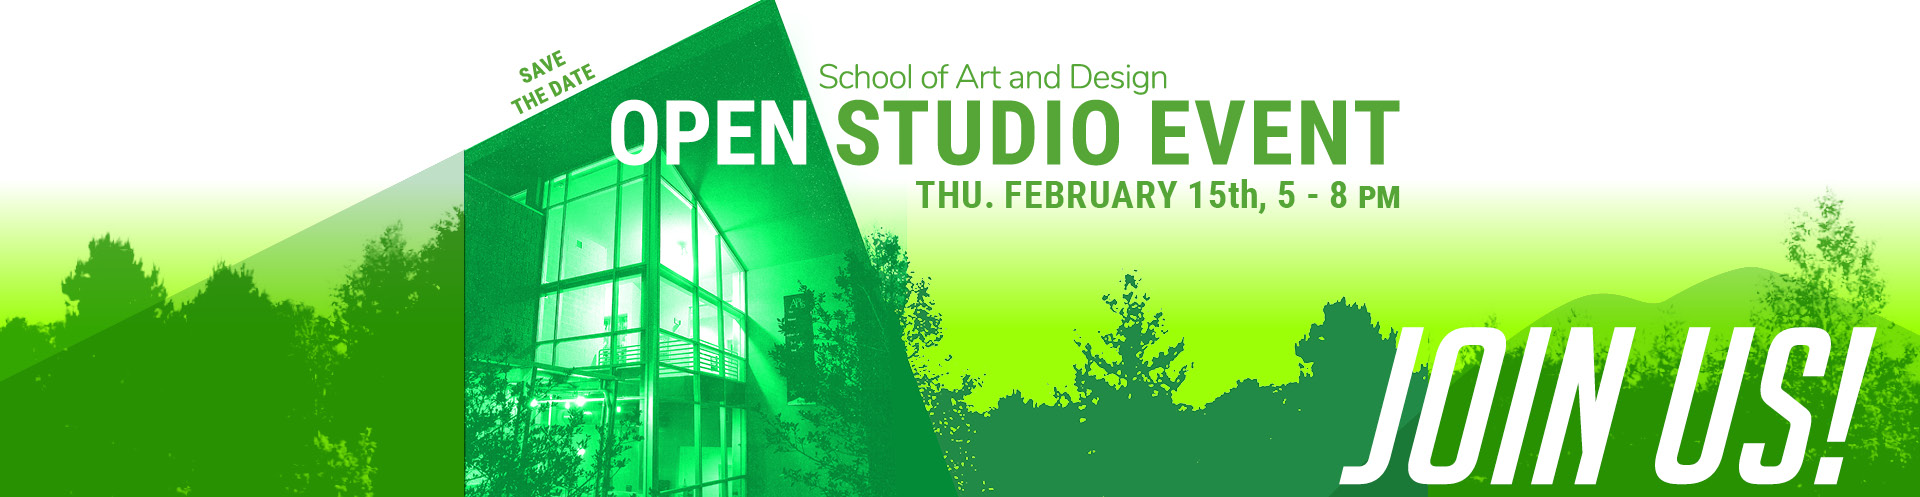 Open Studios Event of the School of Art and Design